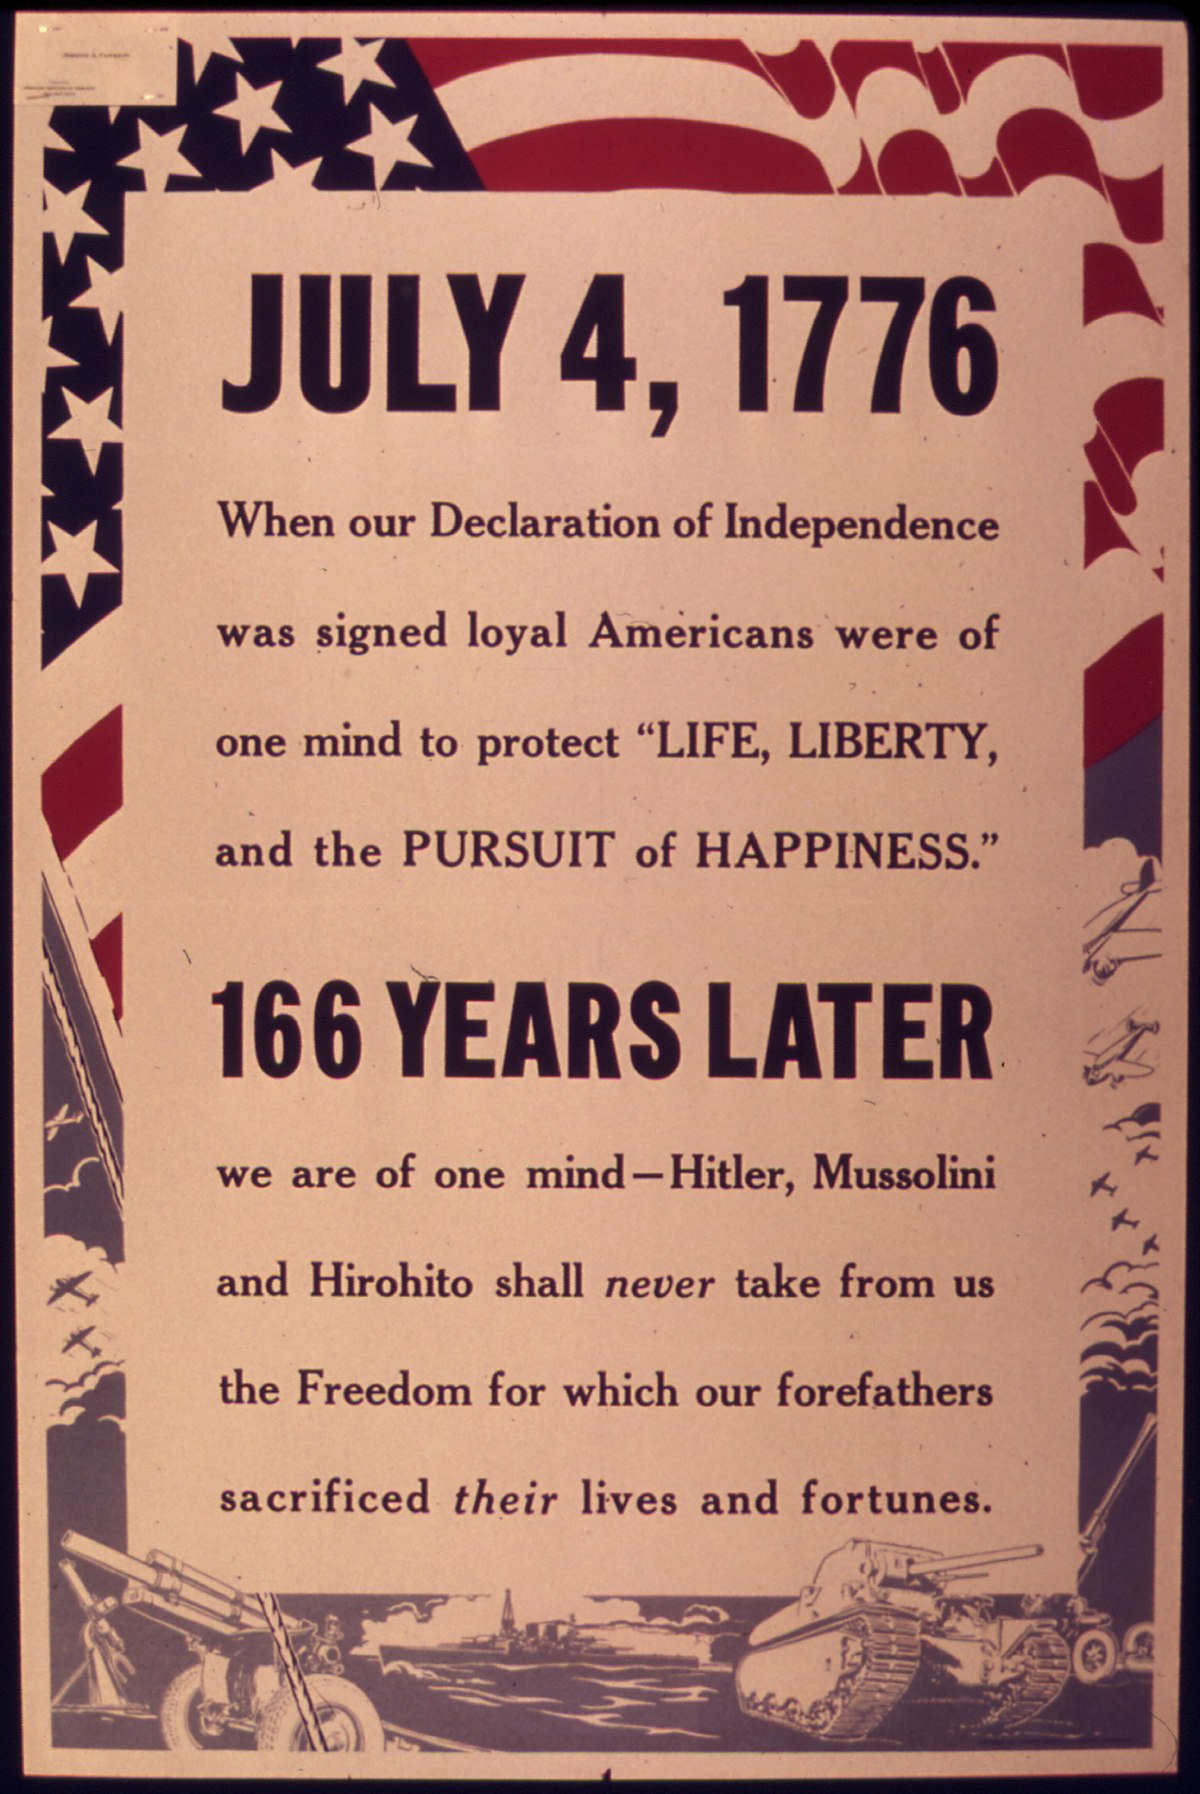 Lossy Page Px July Th When Our Declaration Of Independence Was Signed Loyal Americans Were Of One Mind To Protect Life Nara Tiff